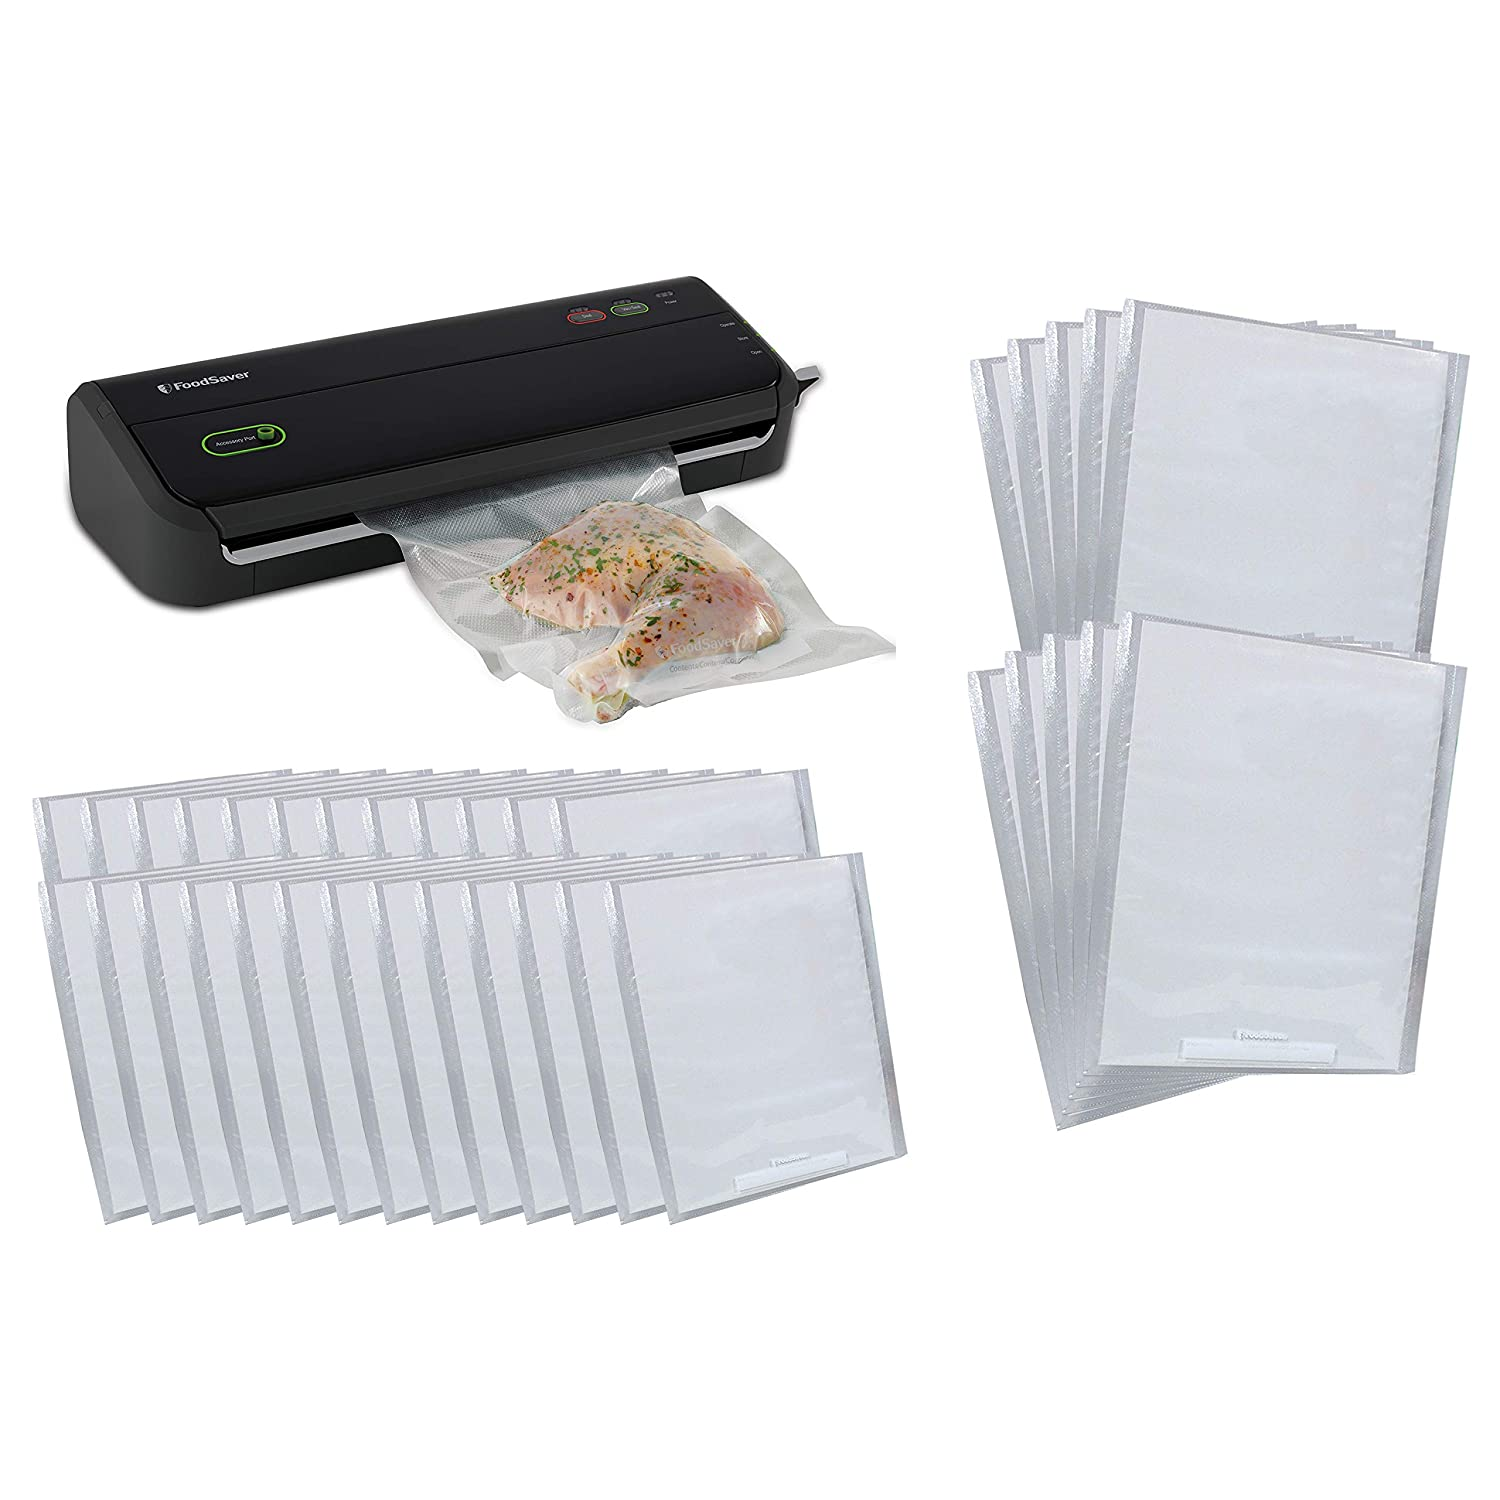 FoodSaver FM2000 Series Vacuum Sealer System with Starter Bags & Rolls & FoodSaver 25 1-Quart and 10 1-Gallon Pre-Cut Vacuum Seal Bags, Combo Pack